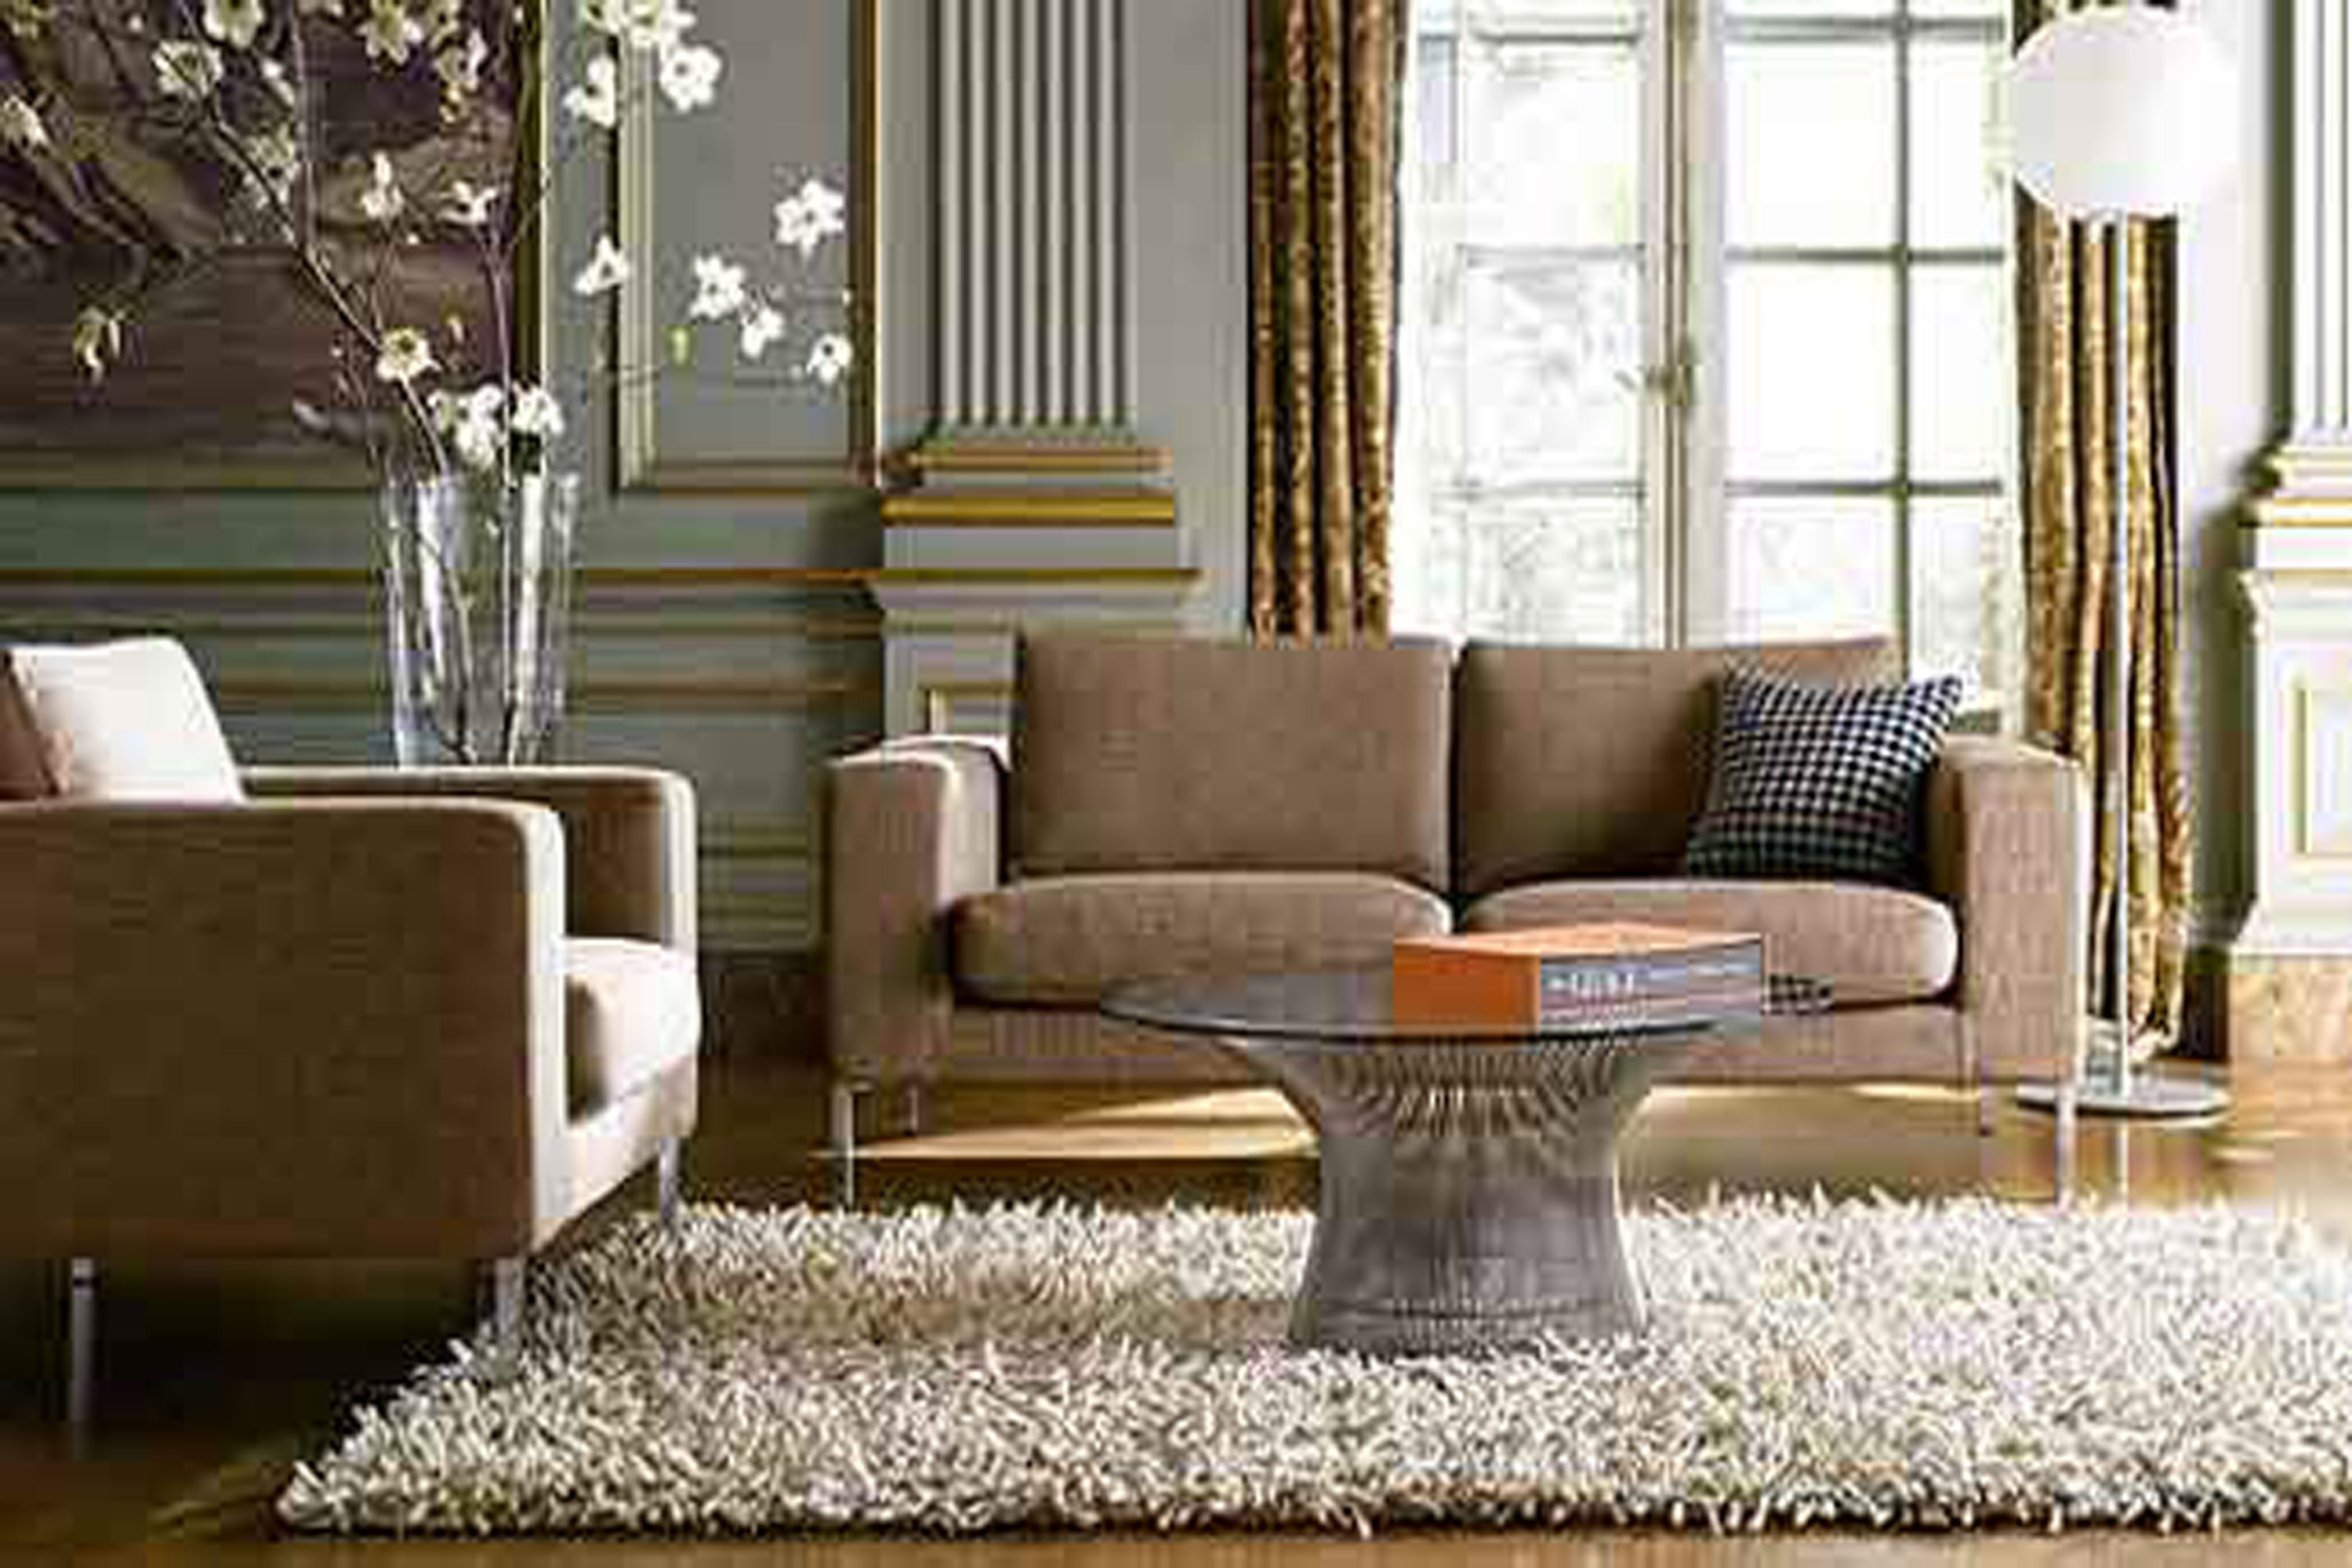 Cute white fur rug with Best wooden laminate flooring and sofa chairs for living room Ideas